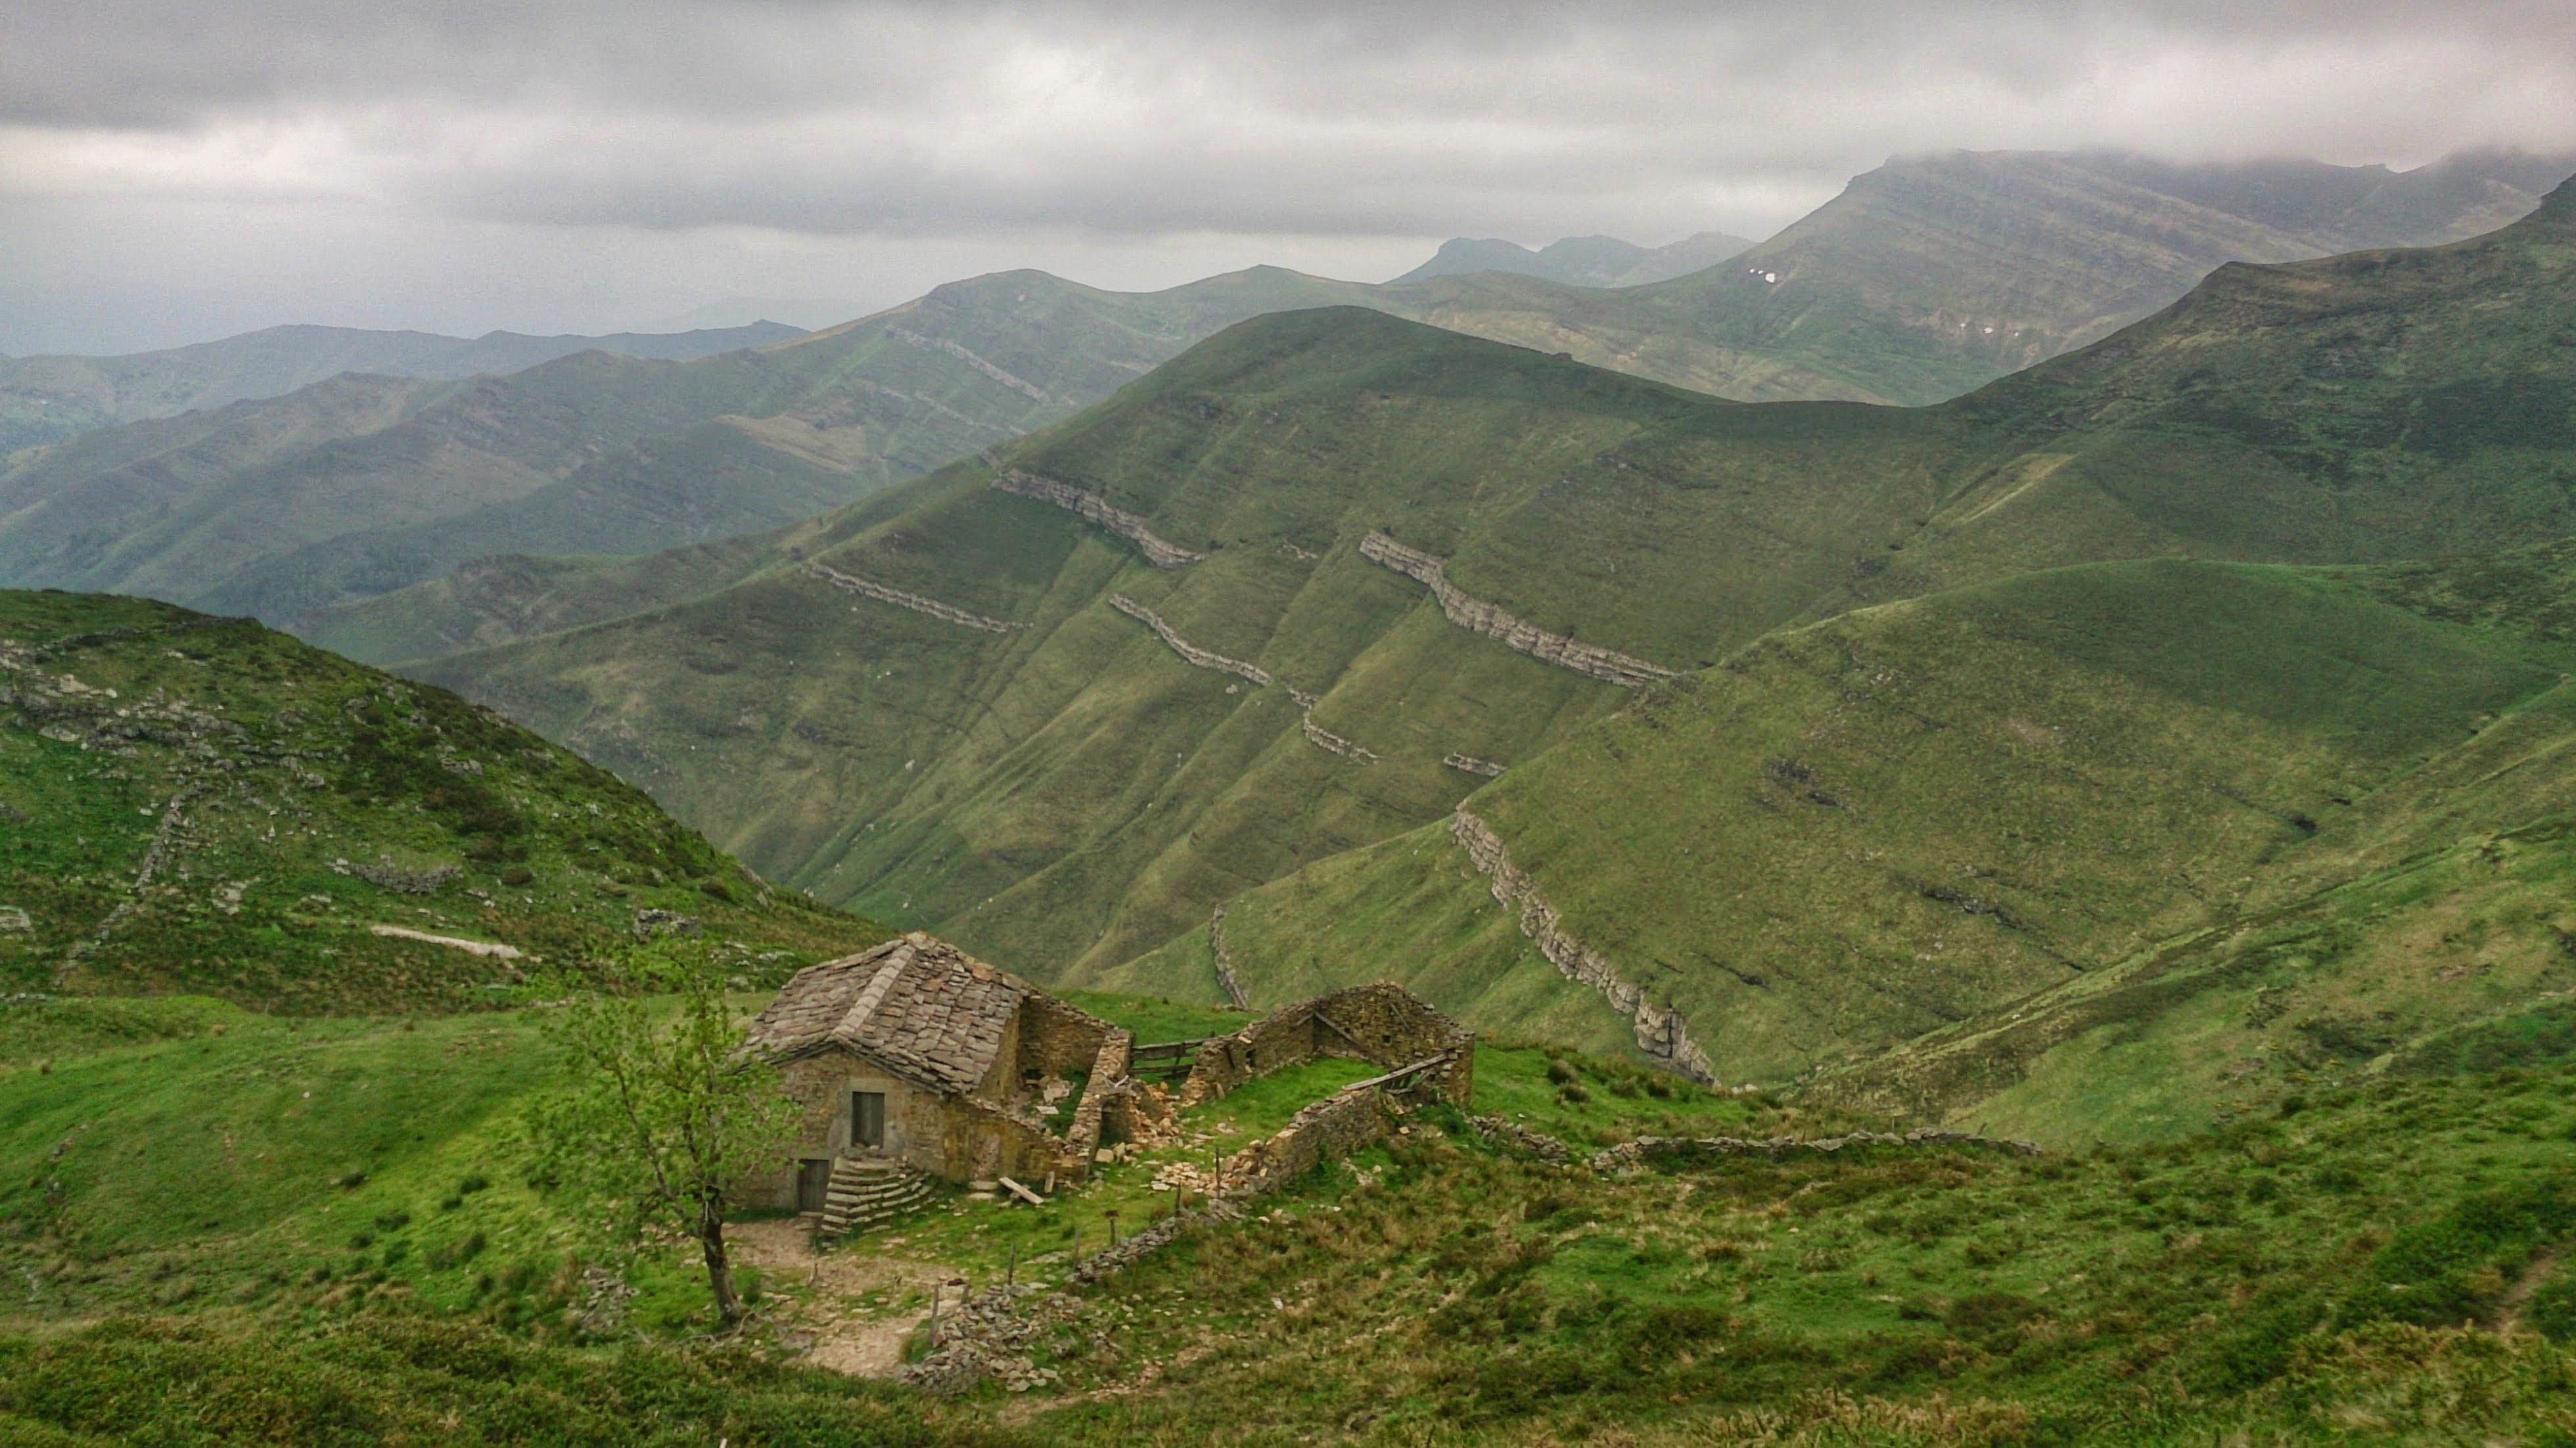 Valles Pasiegos Cantabria Spain #hiking #camping #outdoors #nature #travel #backpacking #adventure #marmot #outdoor #mountains #photography